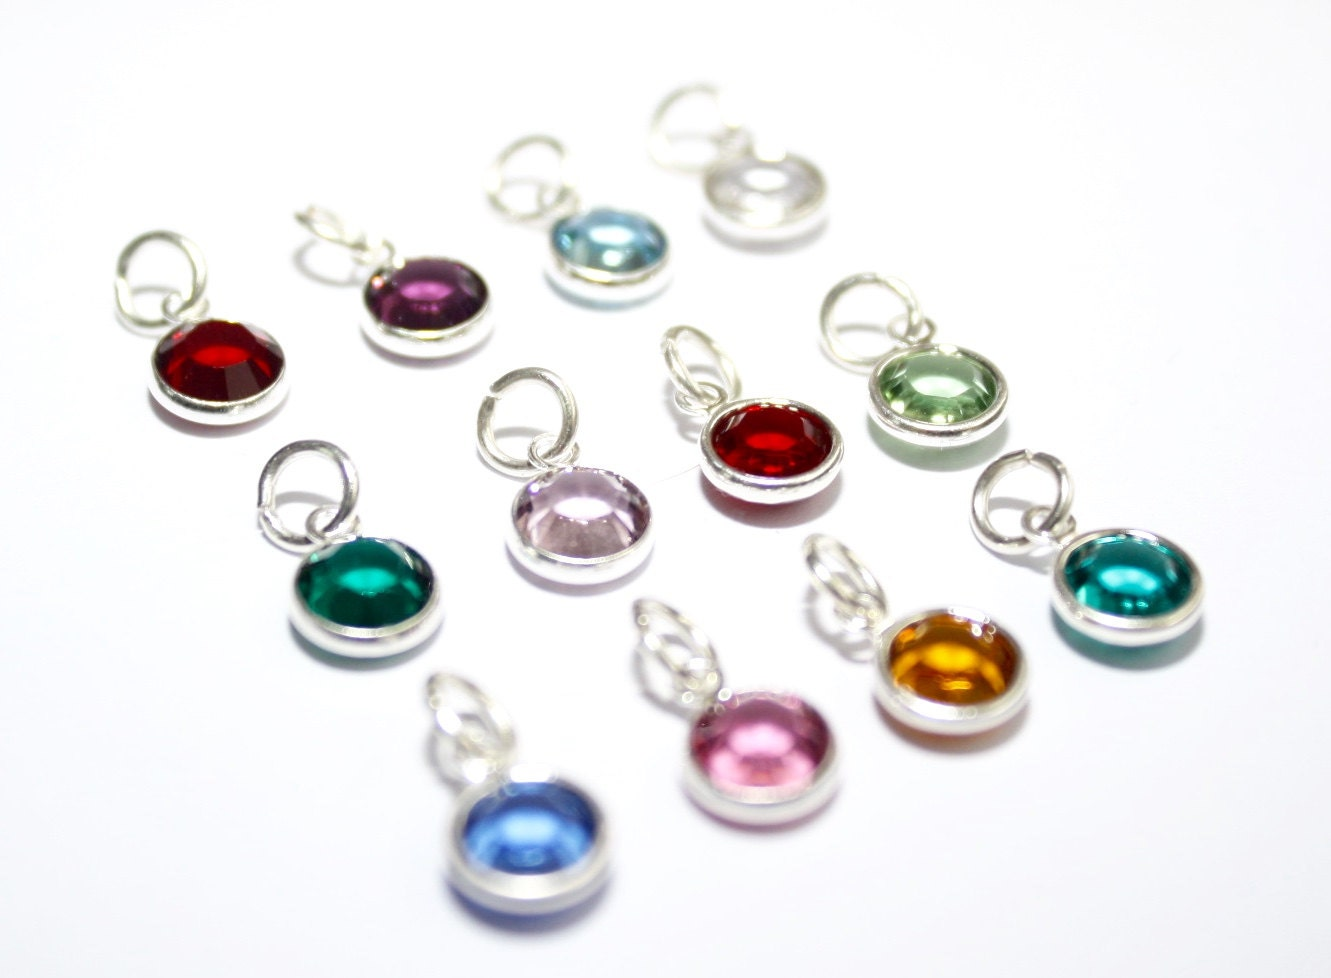 Birthstone Charms Add On Charms Personalise Your Jewellery Add On Birthstone Crystal Add on Birthstone Charms